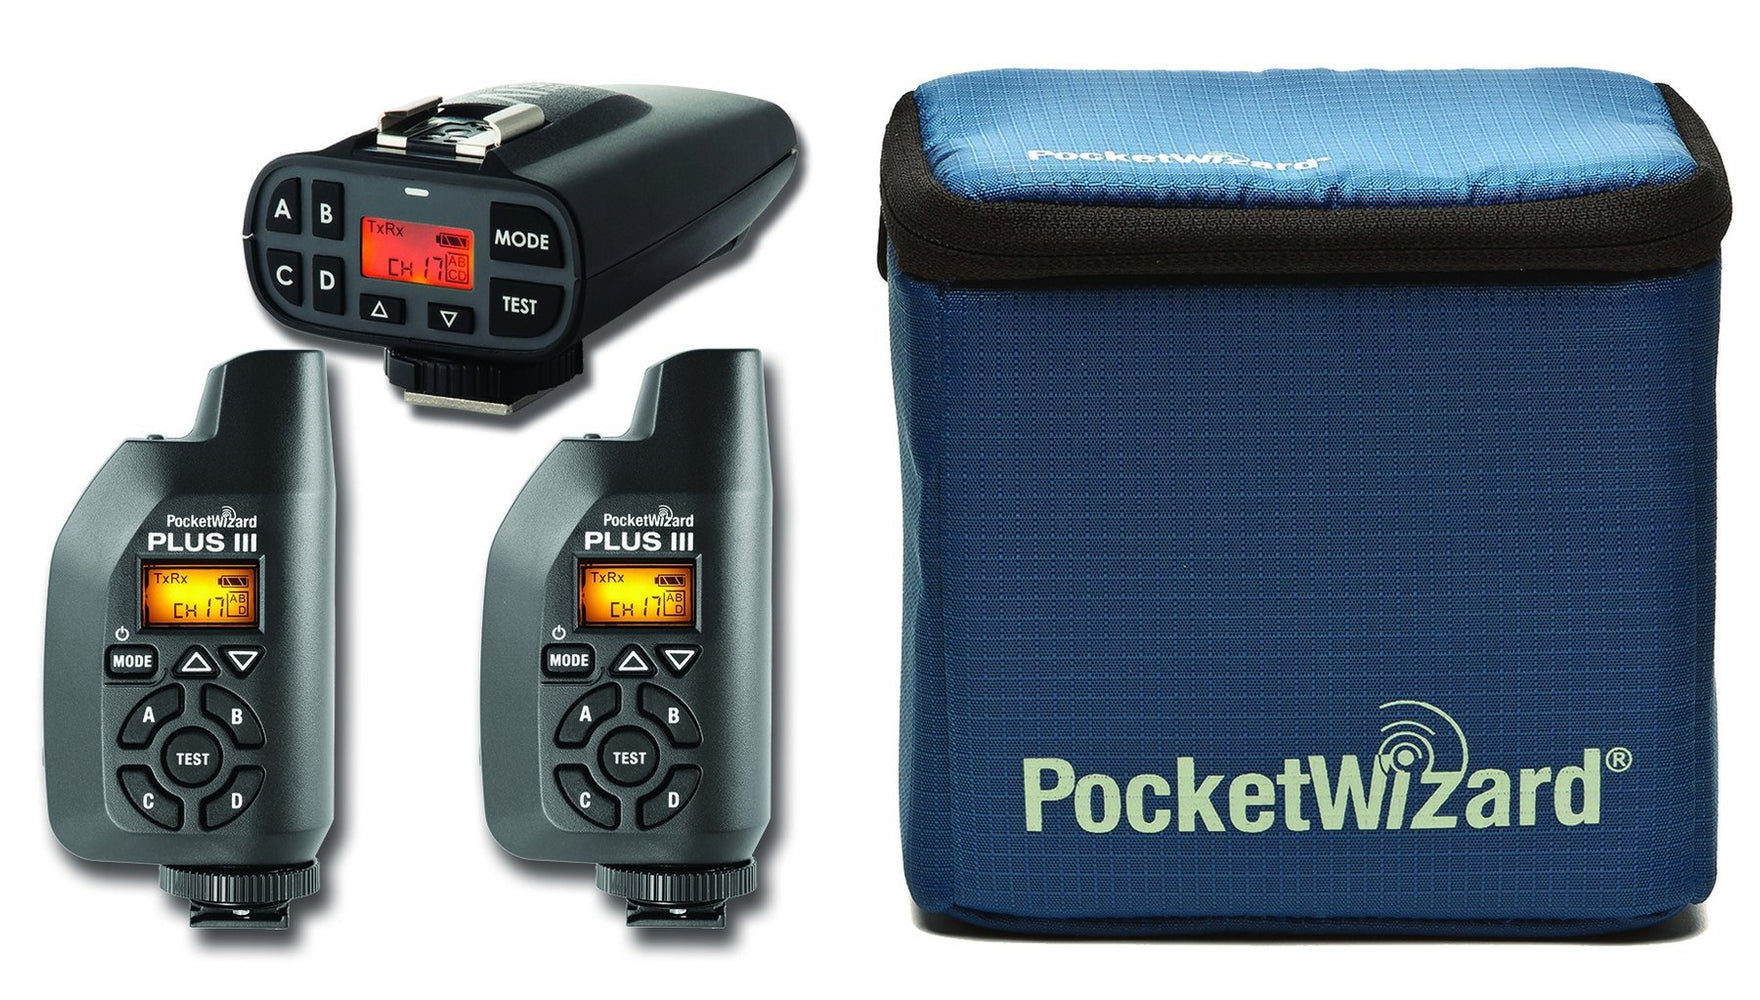 PocketWizard Plus IVe / IIIe Bonus Bundle 4